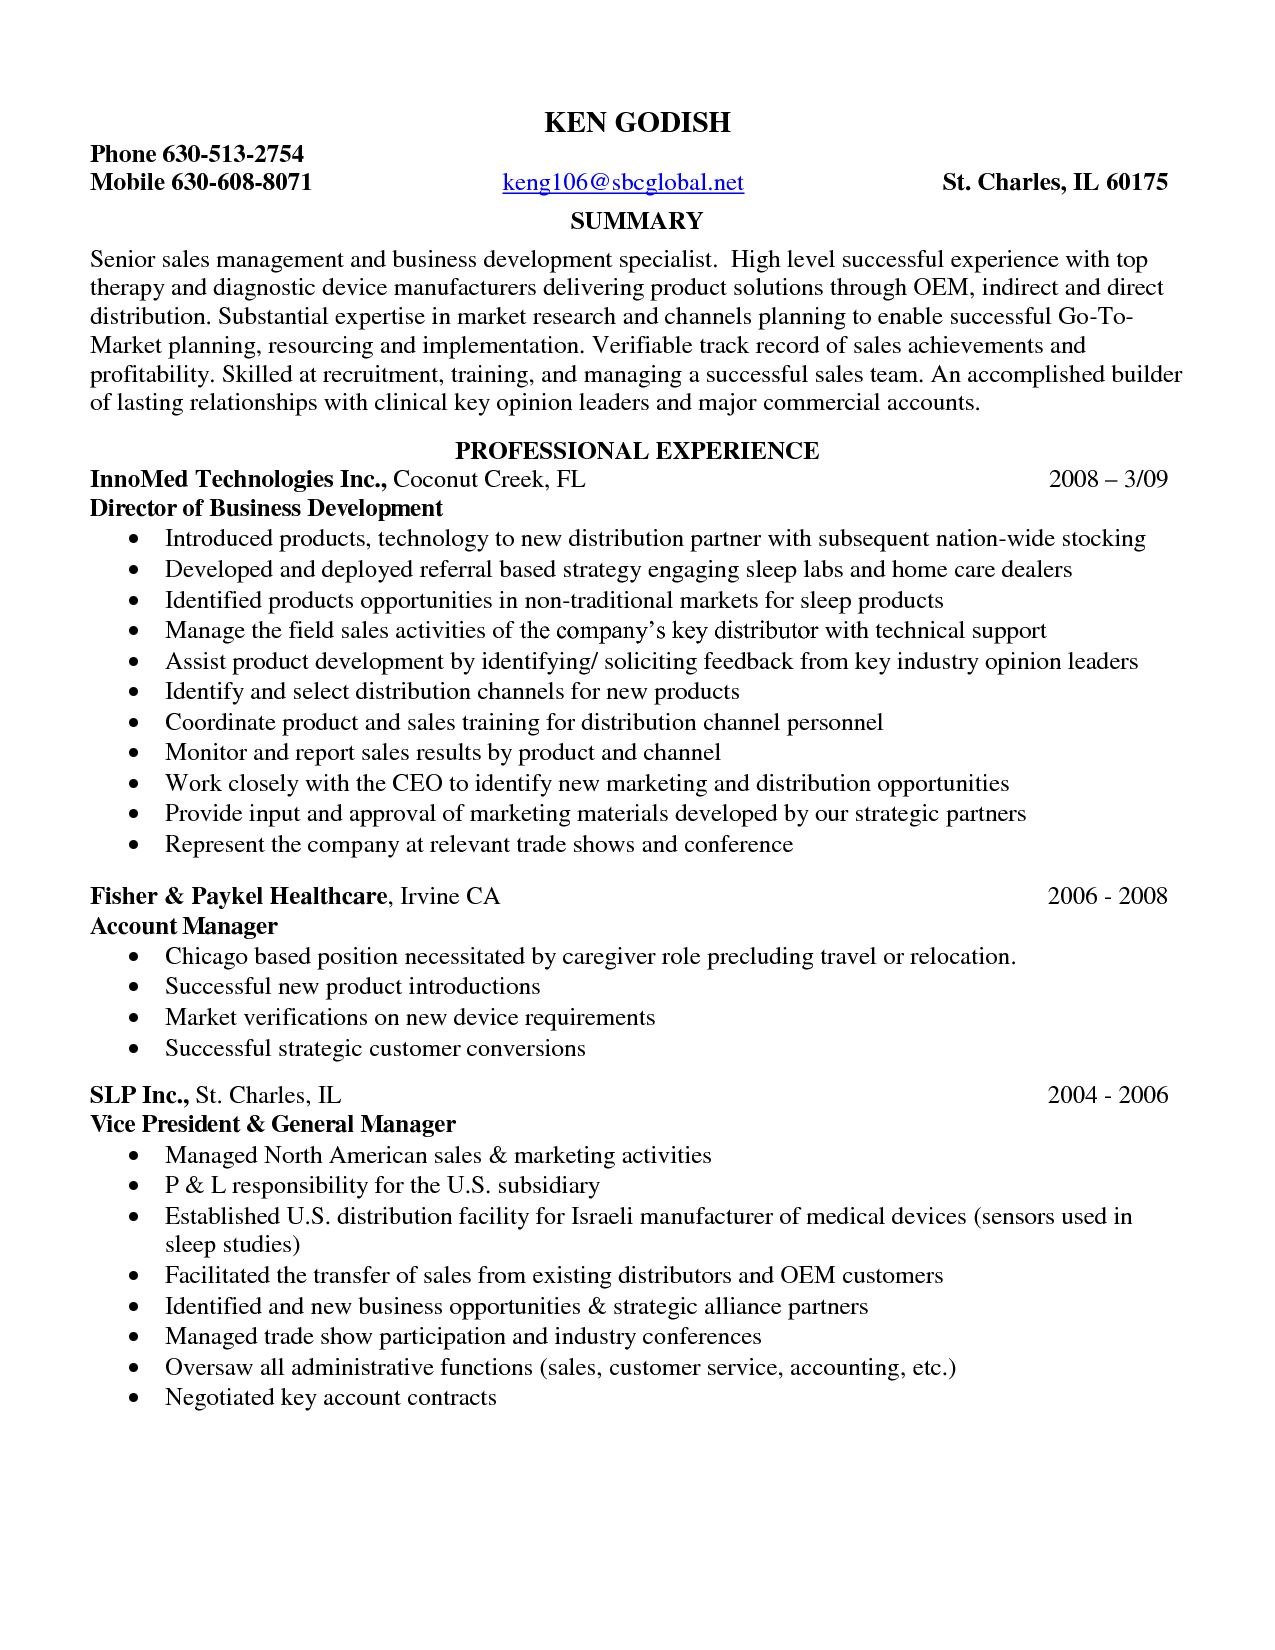 sample resume entry level pharmaceutical sales sample resume entry level pharmaceutical sales entry level pharmaceutical. Resume Example. Resume CV Cover Letter